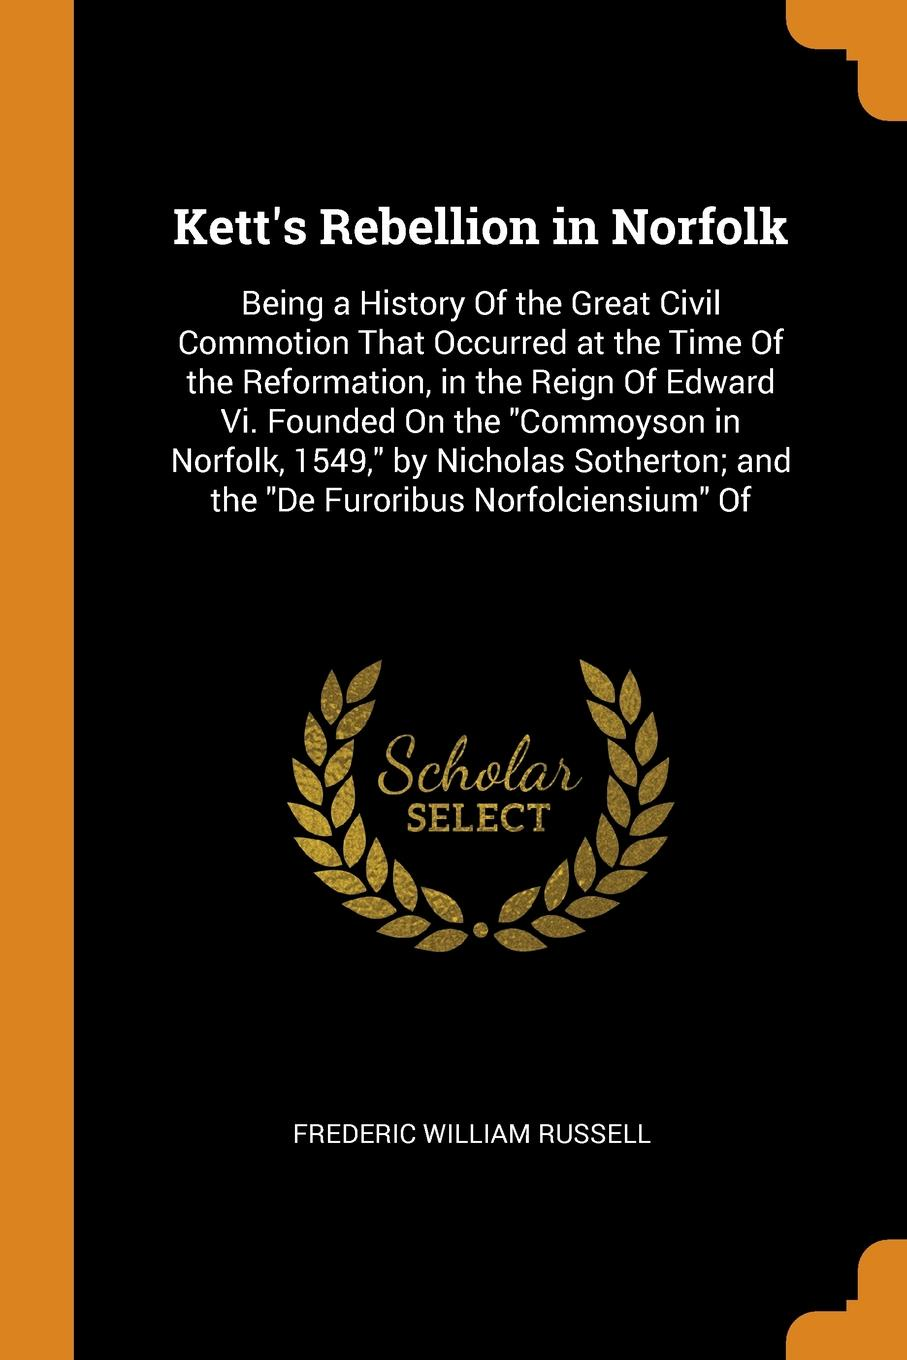 Frederic William Russell Kett's Rebellion in Norfolk. Being a History Of the Great Civil Commotion That Occurred at the Time Of the Reformation, in the Reign Of Edward Vi. Founded On the Commoyson in Norfolk, 1549, by Nicholas Sotherton; and the De Furoribus Norfolcien... john glyde the norfolk garland a collection of the superstitious beliefs and practices proverbs curious customs ballads and songs of the people of norfolk or peculiarities of norfolk celebrities